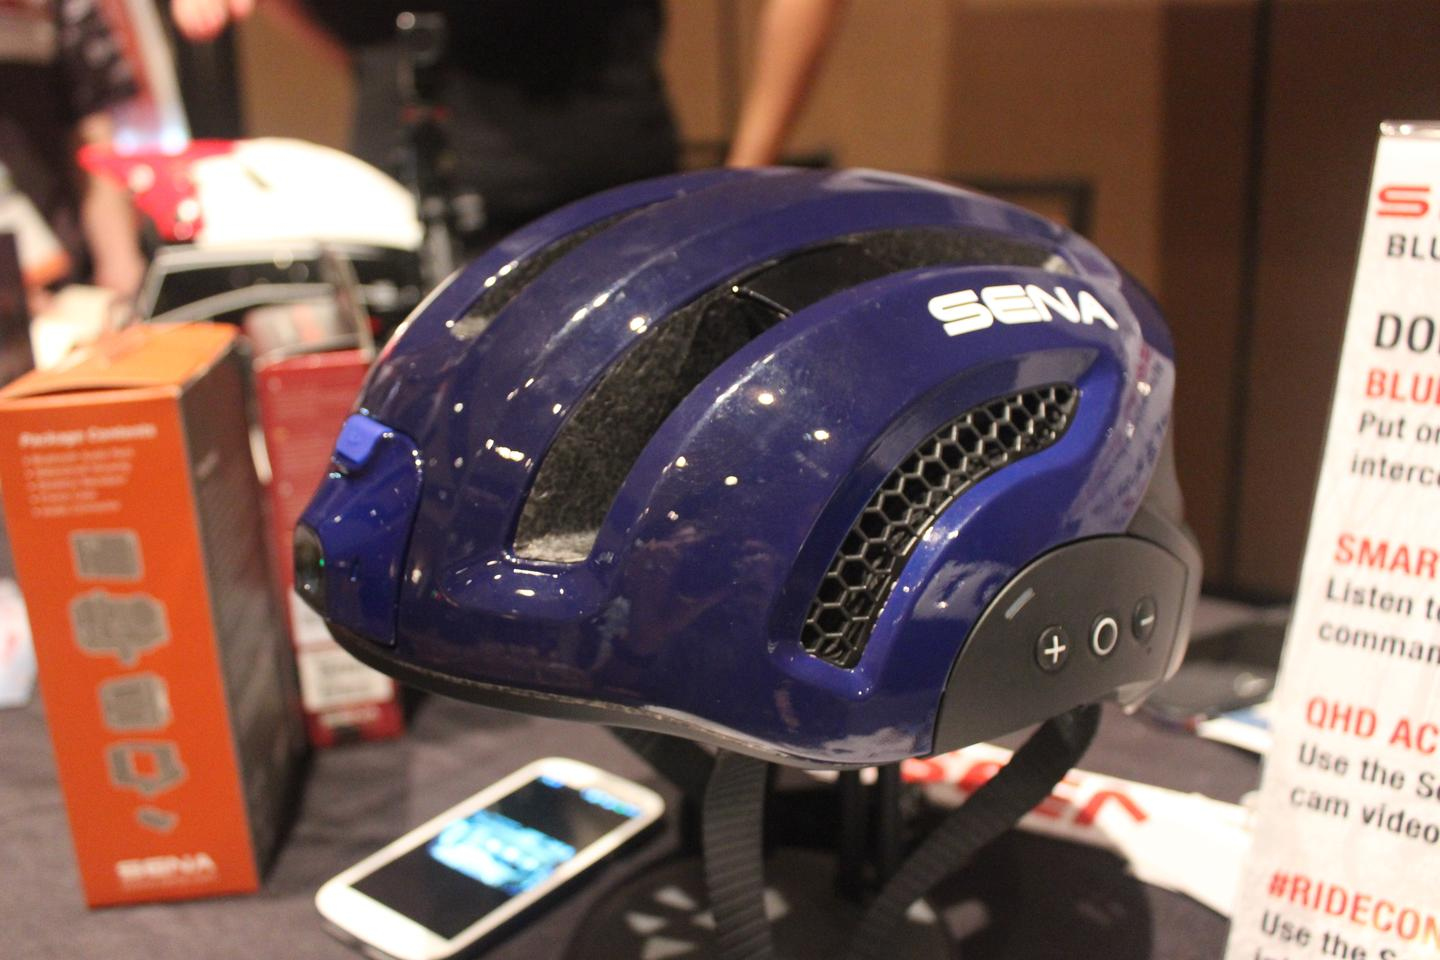 Sena unveiled the Smart Helmet at Interbike this week